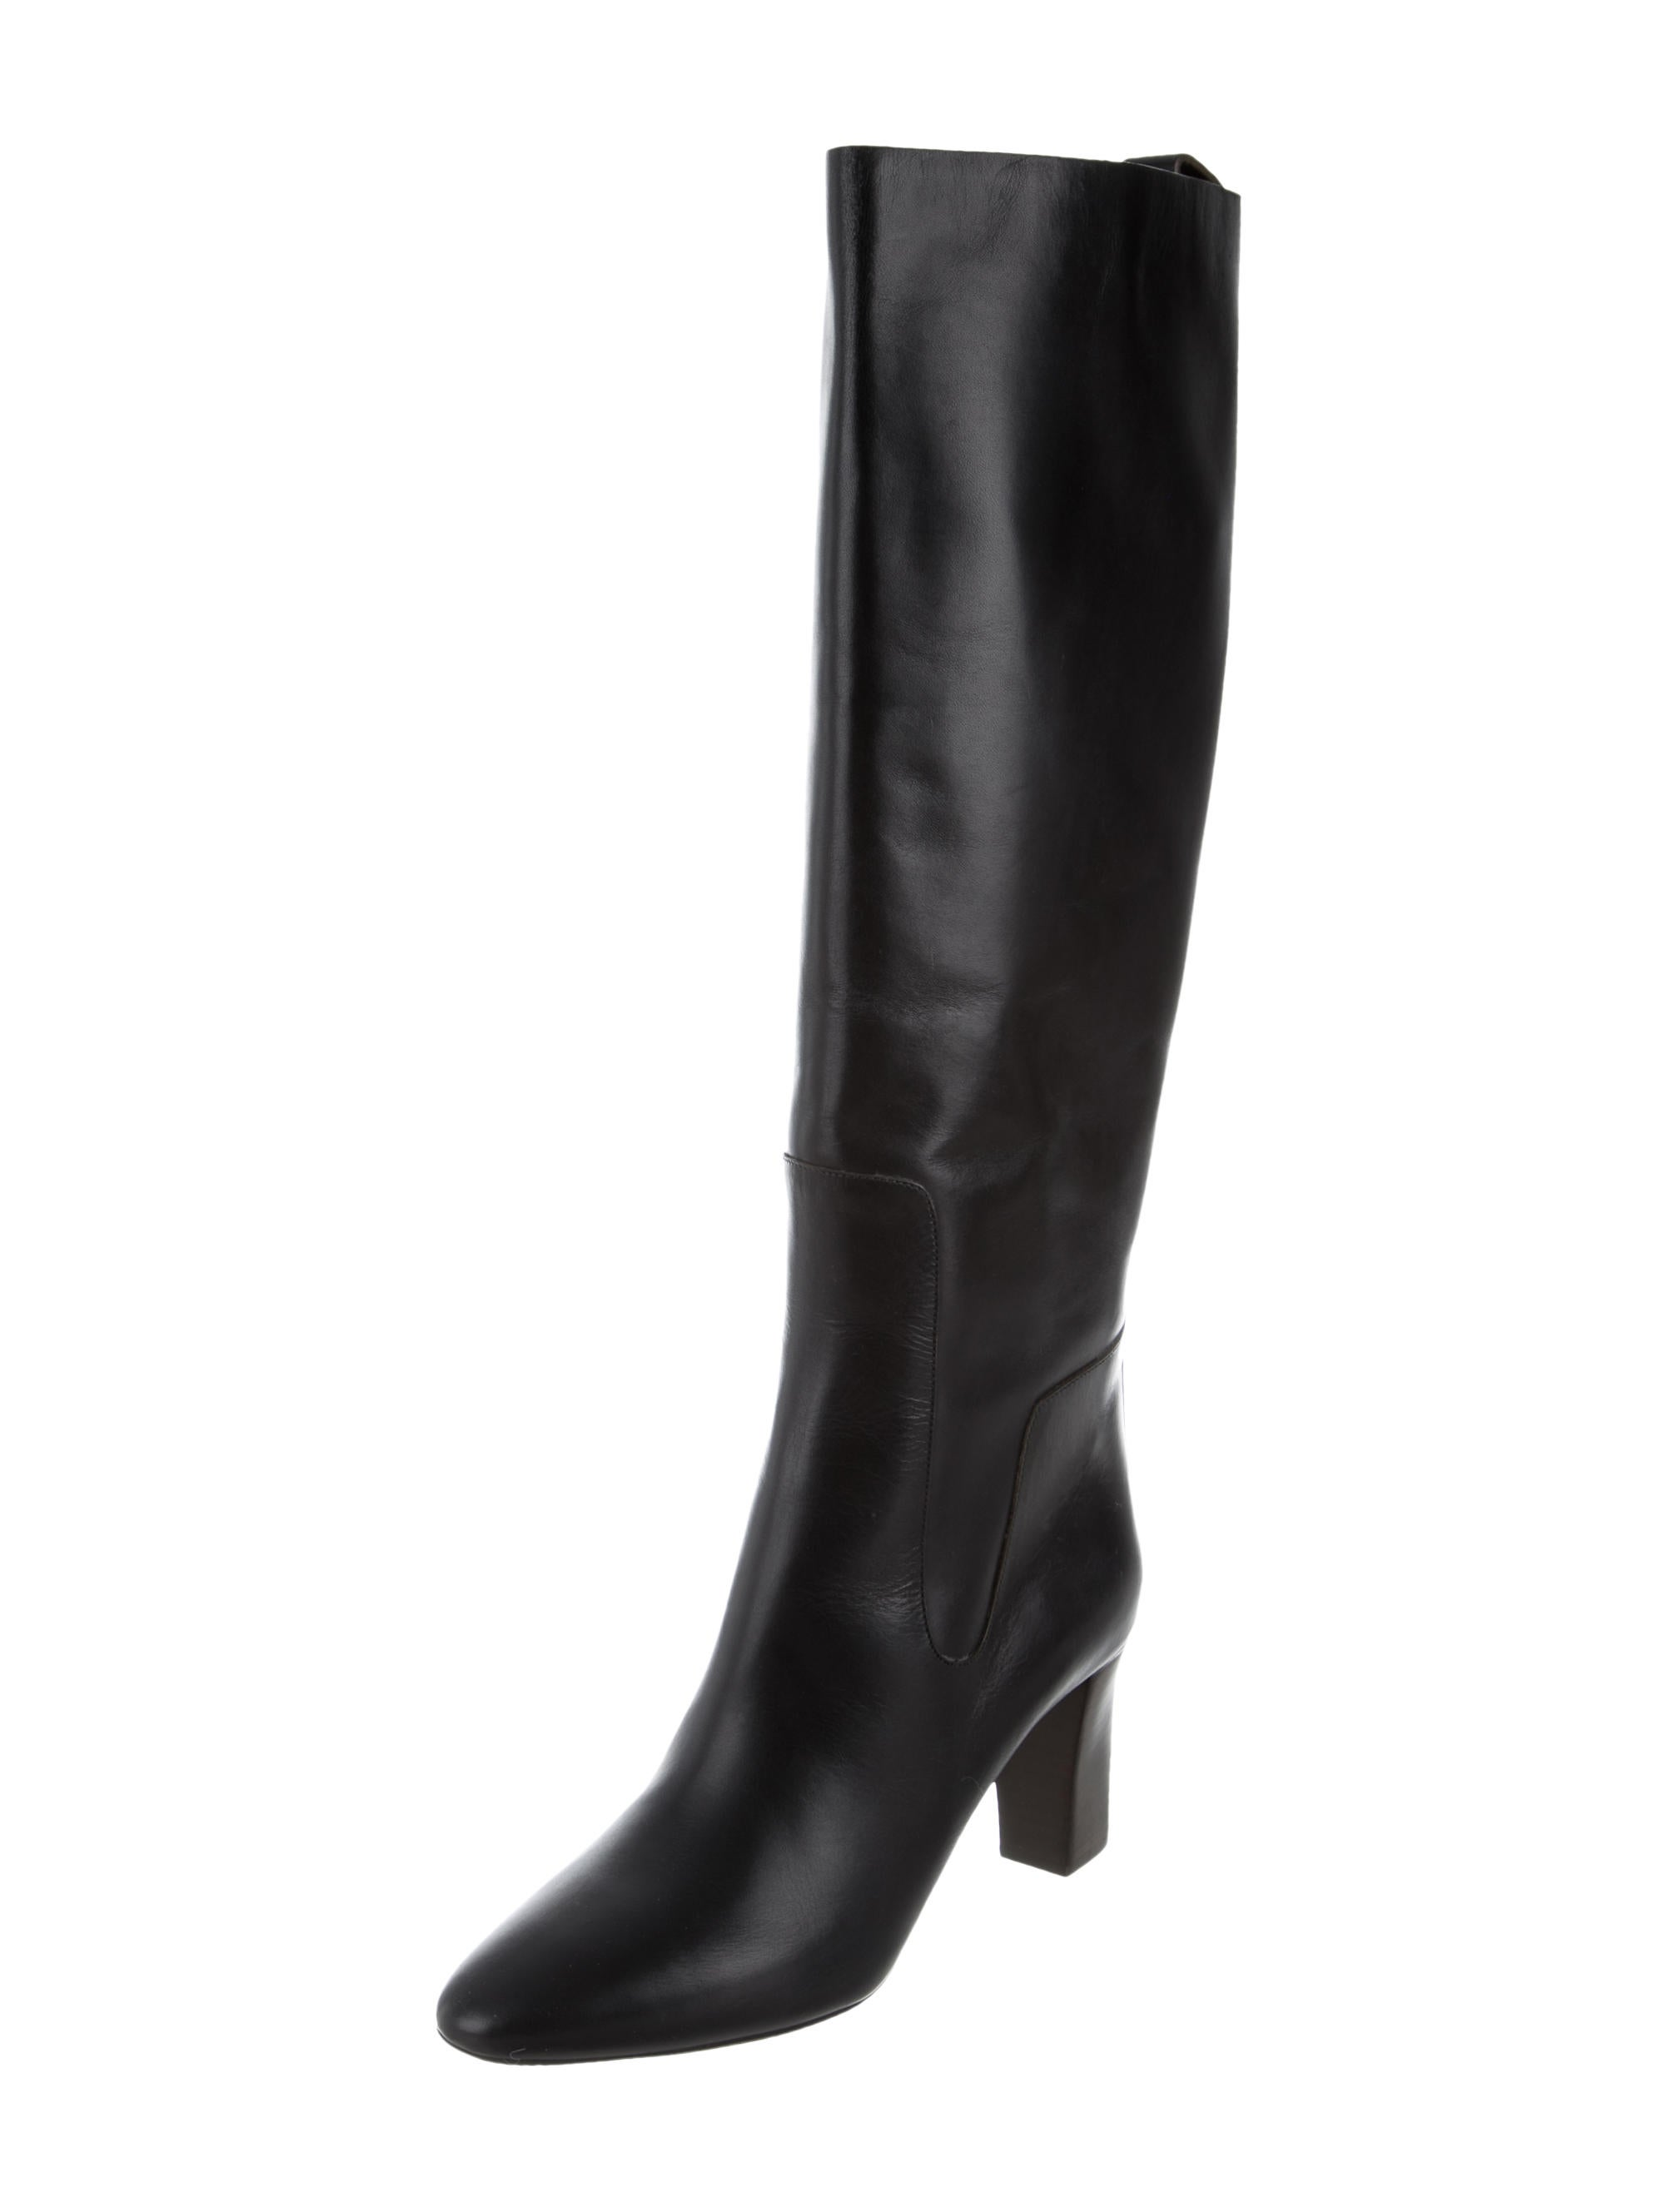 chlo 233 pointed toe knee high boots shoes chl49173 the